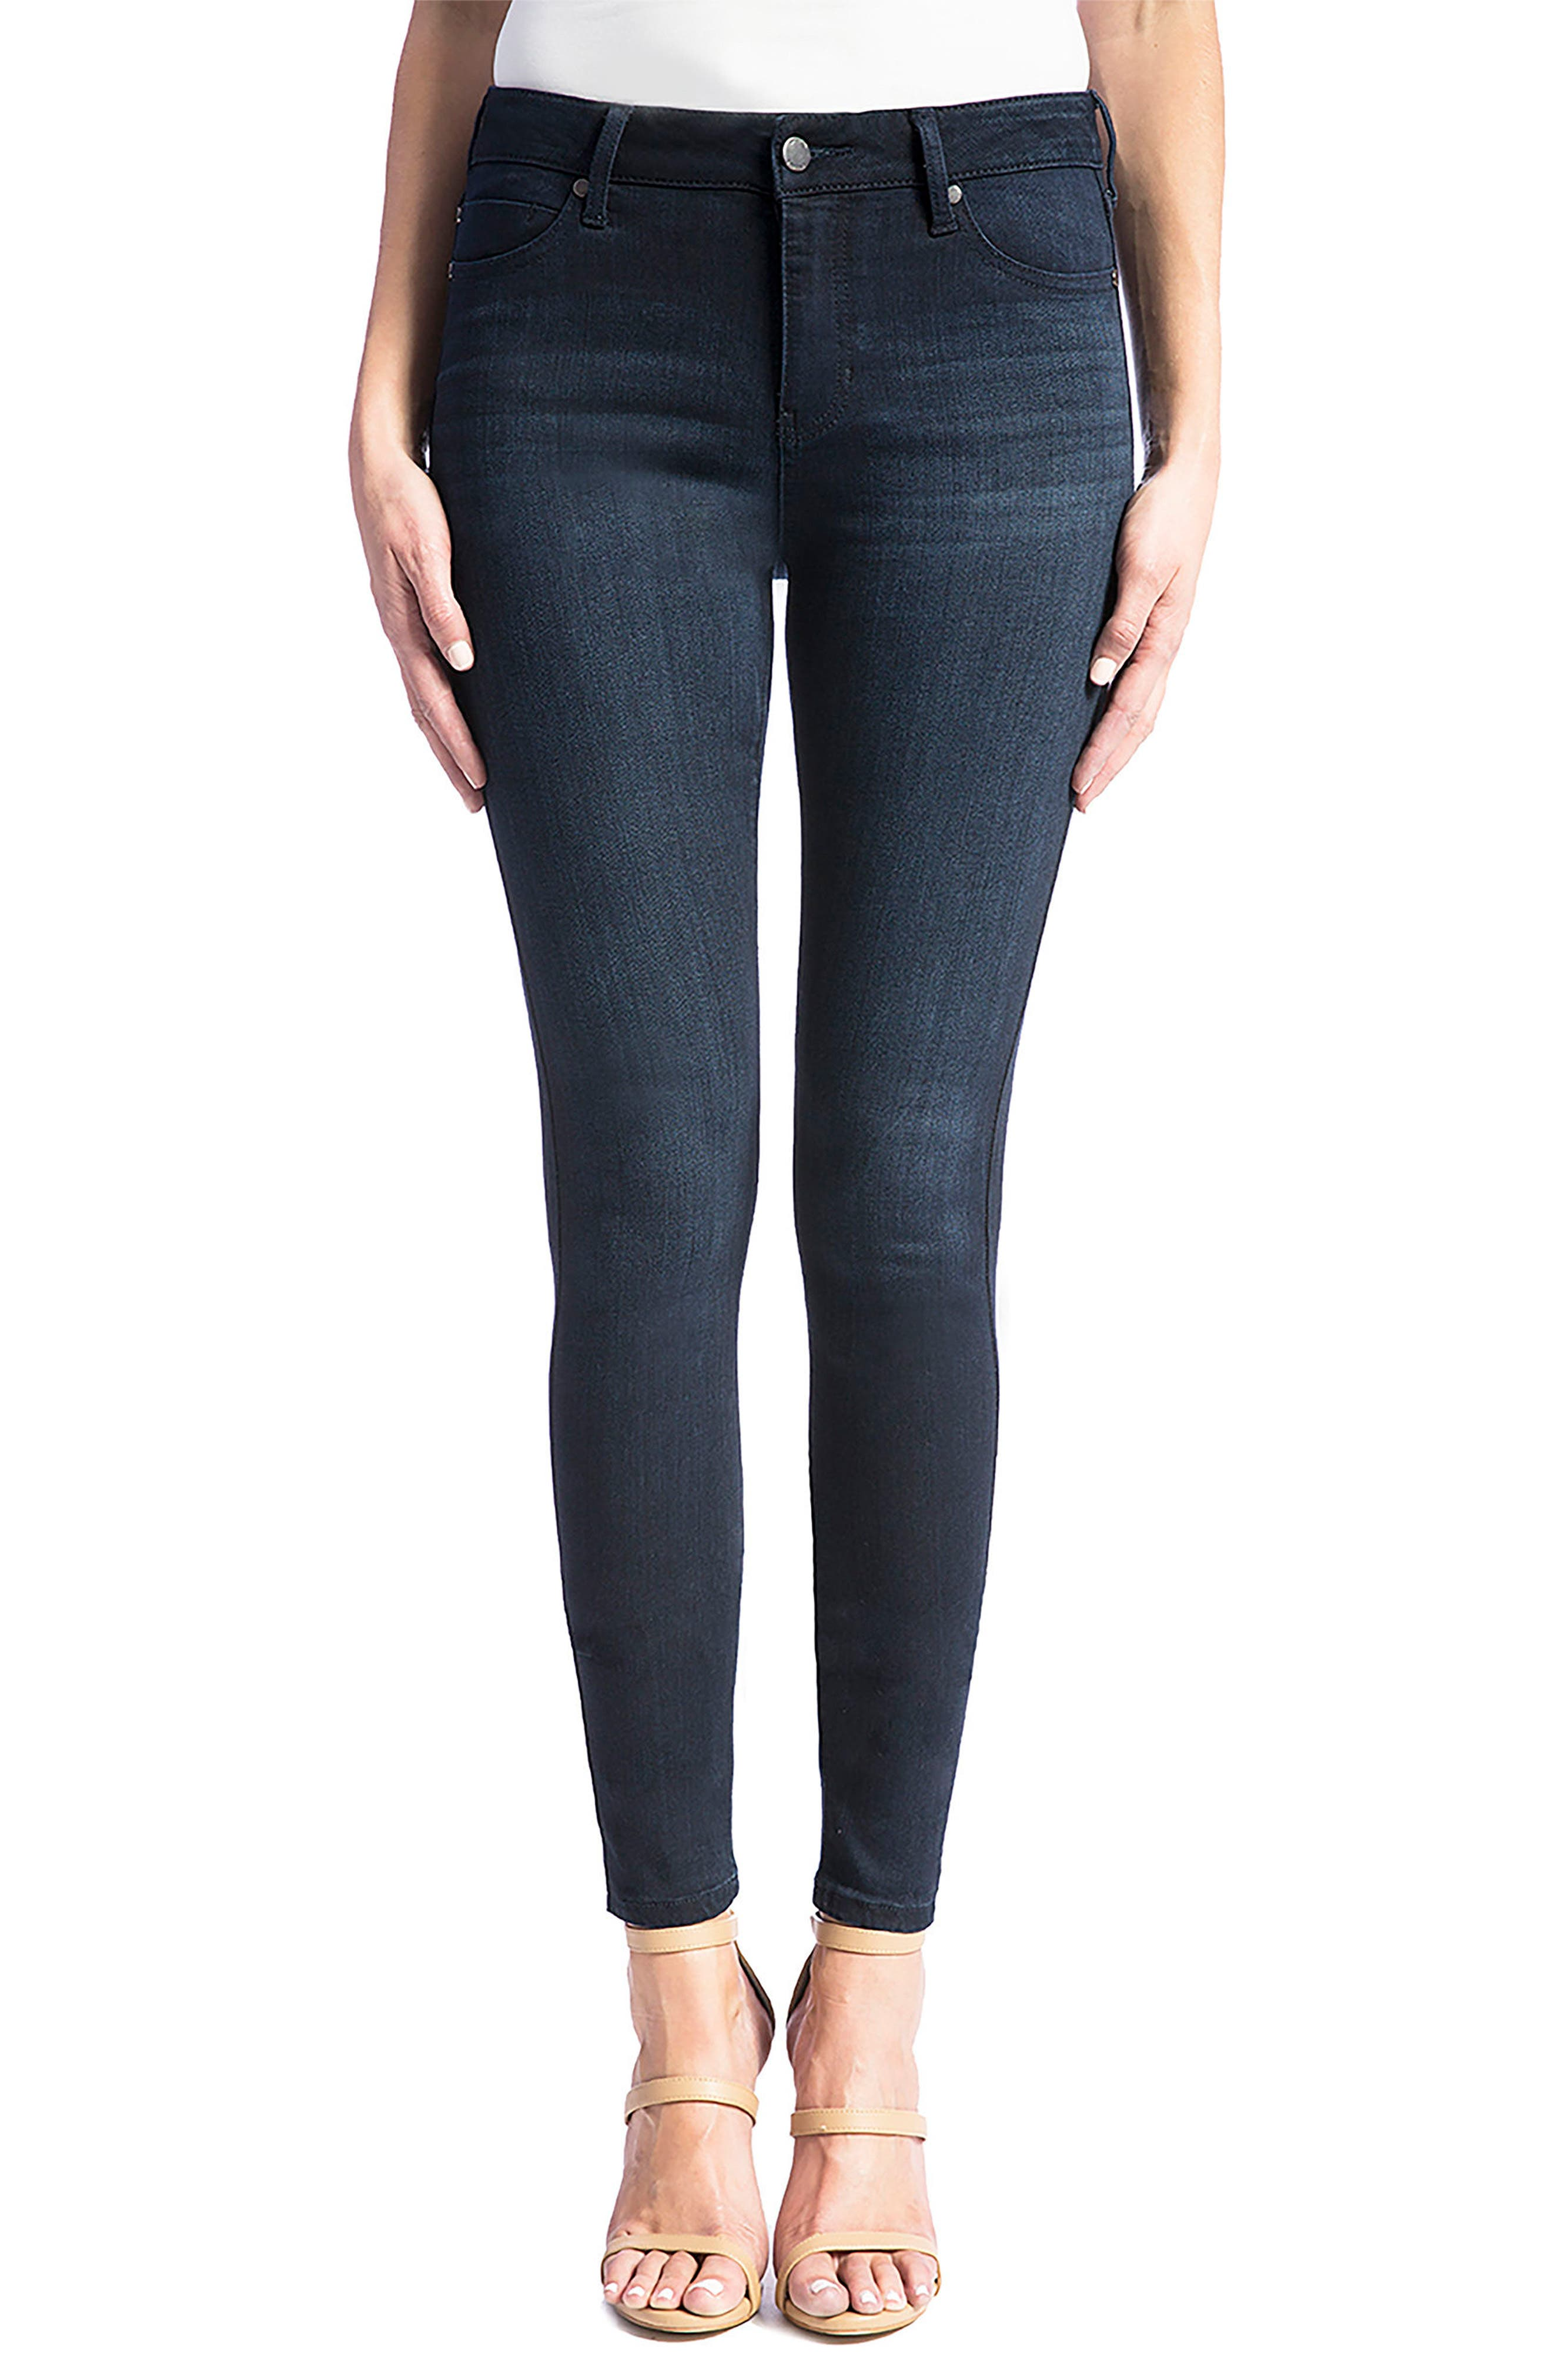 Jeans Co. Abby Stretch Skinny Jeans,                             Main thumbnail 1, color,                             Stone Wash